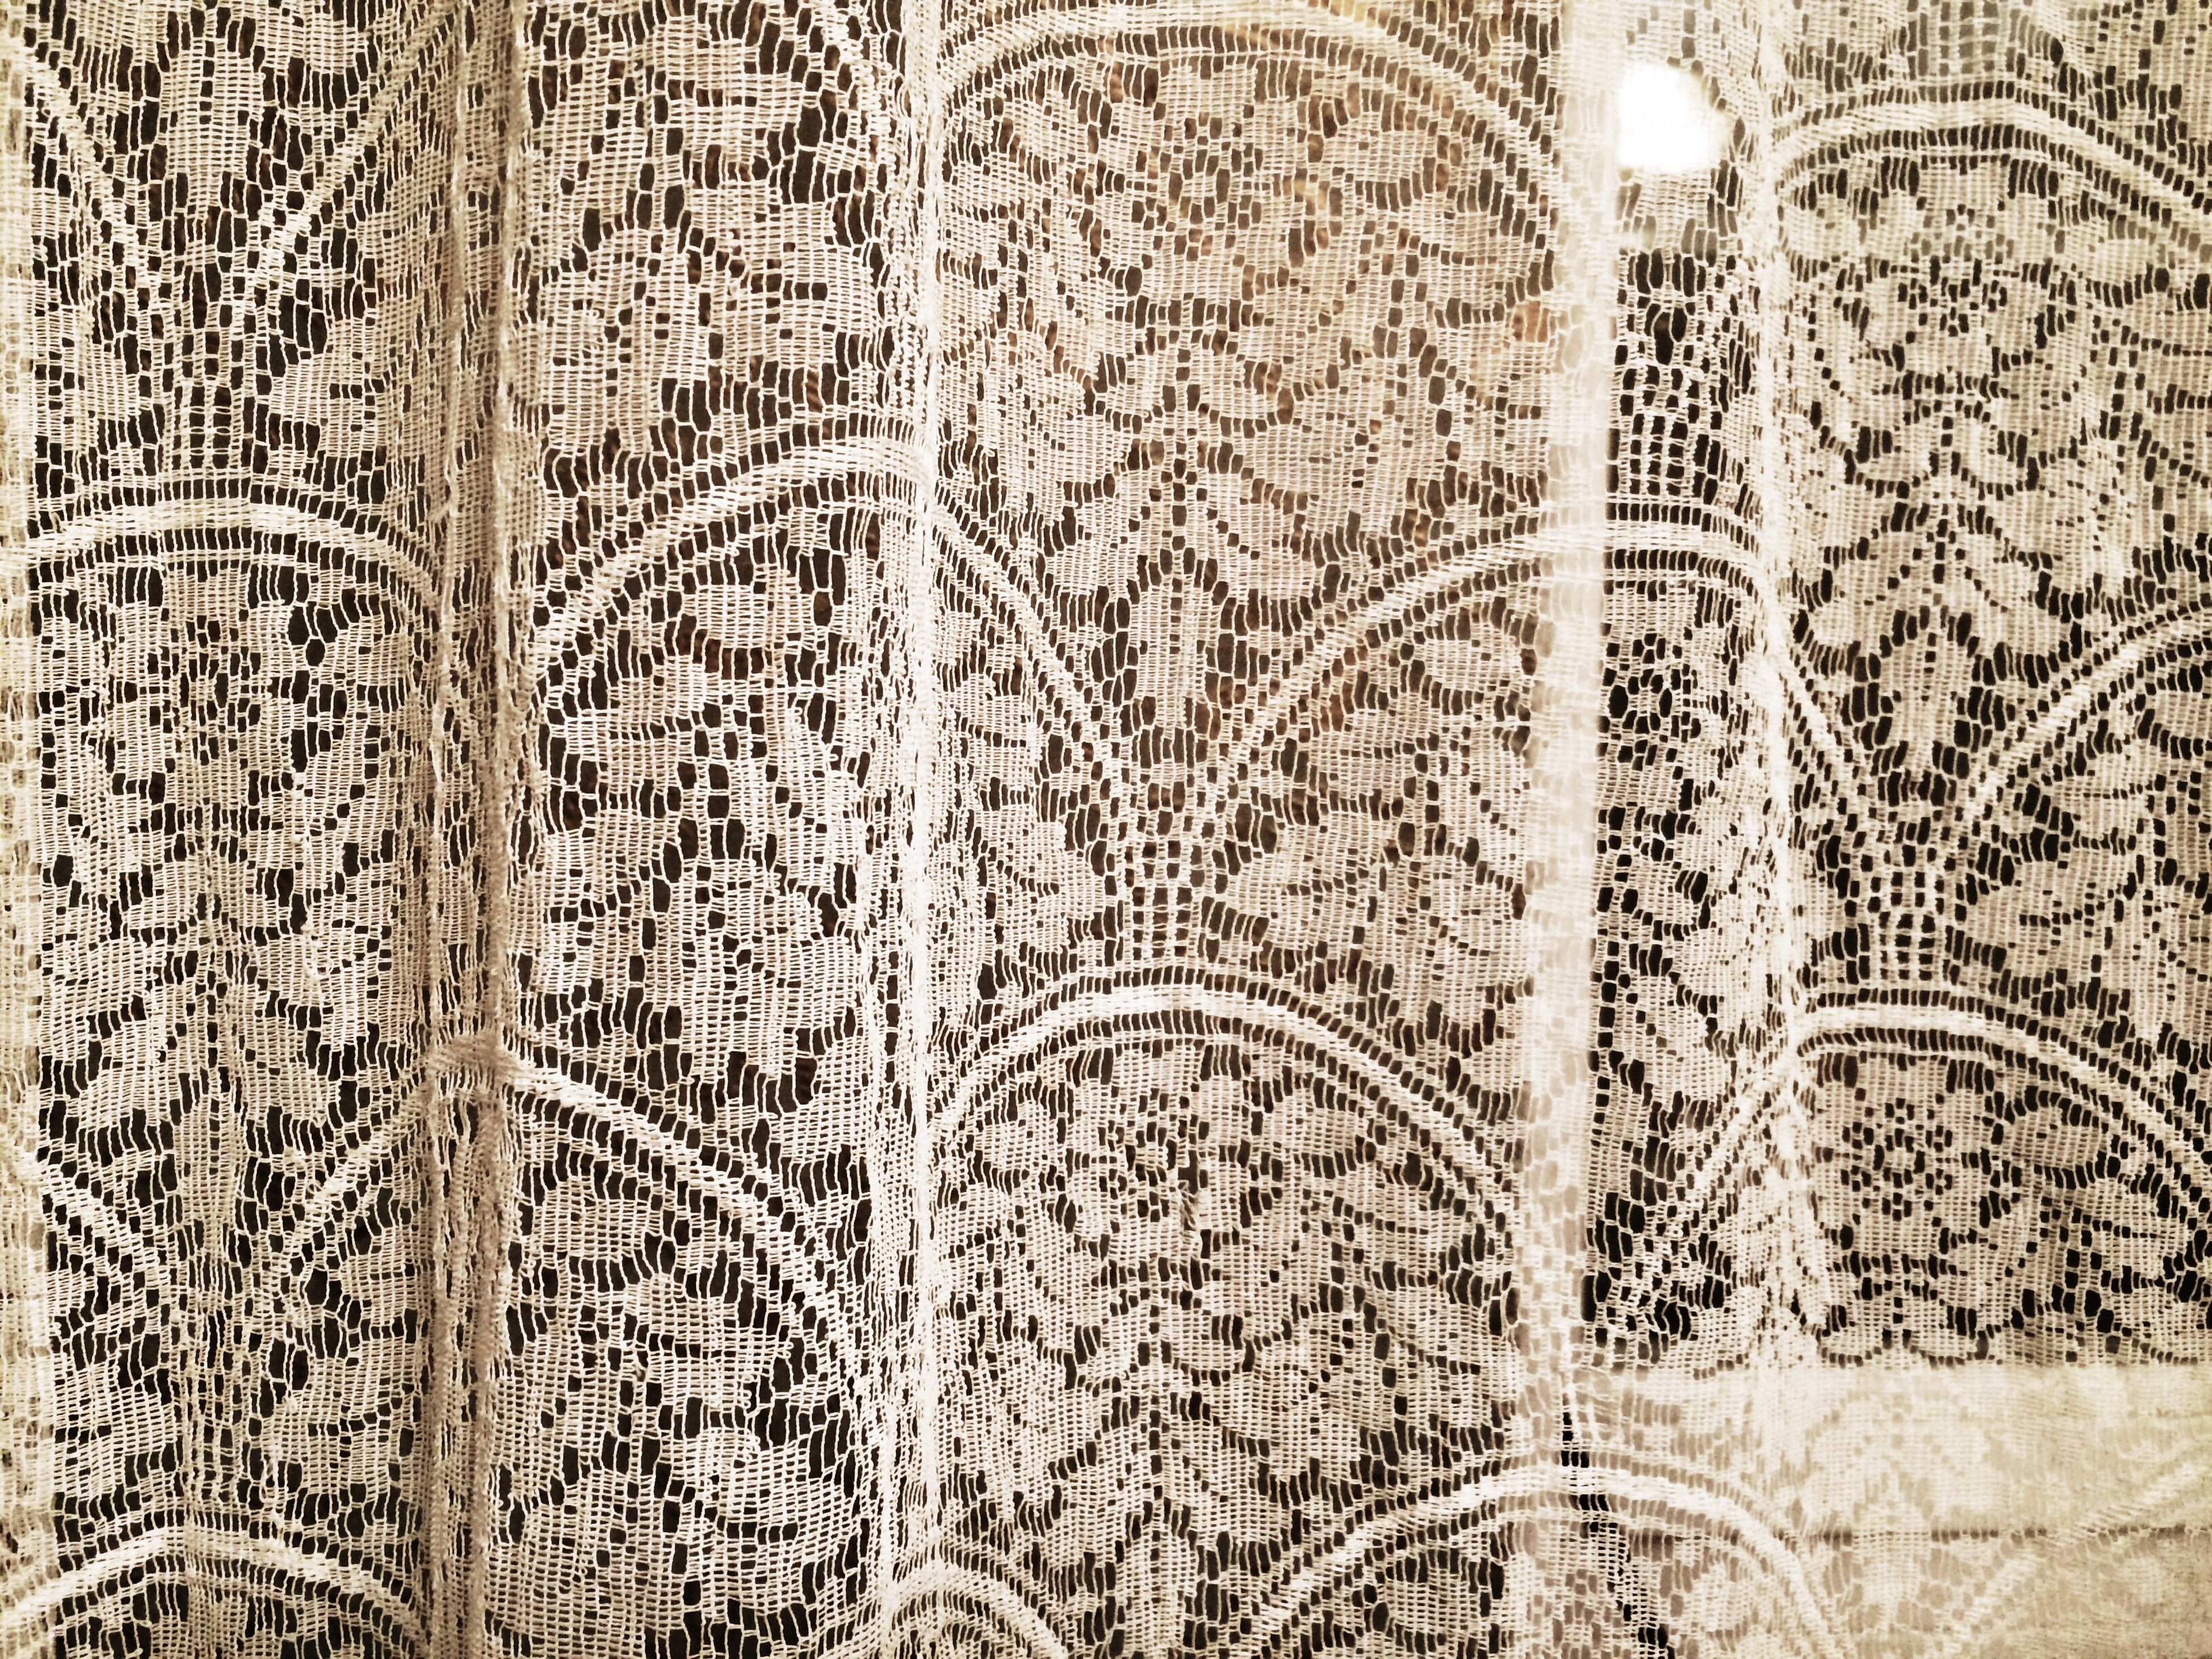 indoors, wall - building feature, design, pattern, art, art and craft, creativity, architecture, built structure, floral pattern, wall, ornate, close-up, no people, religion, day, curtain, spirituality, full frame, textile